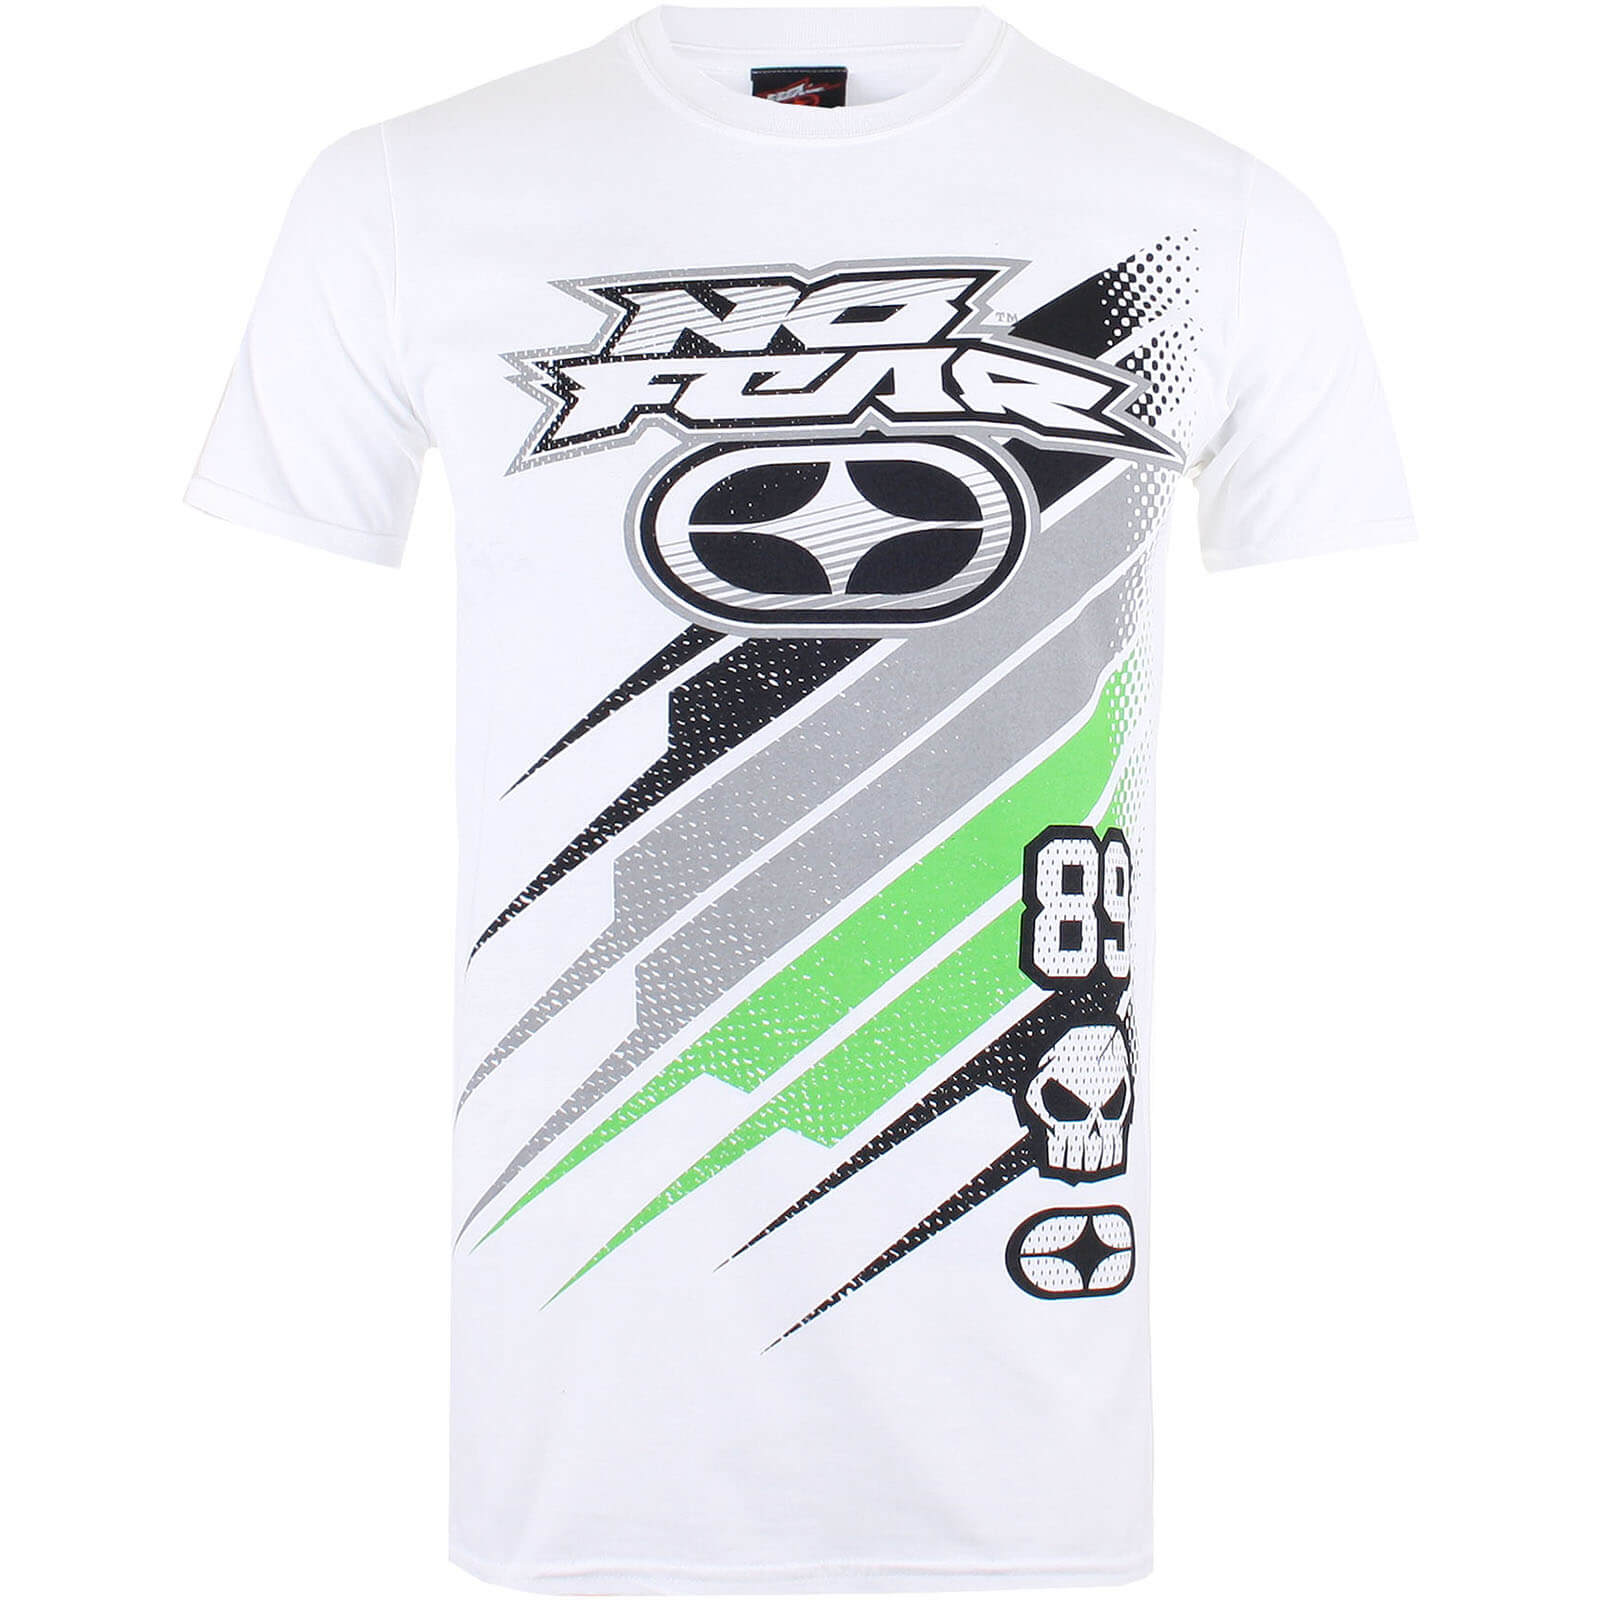 T-Shirt Homme No Fear Race Jersey - Blanc